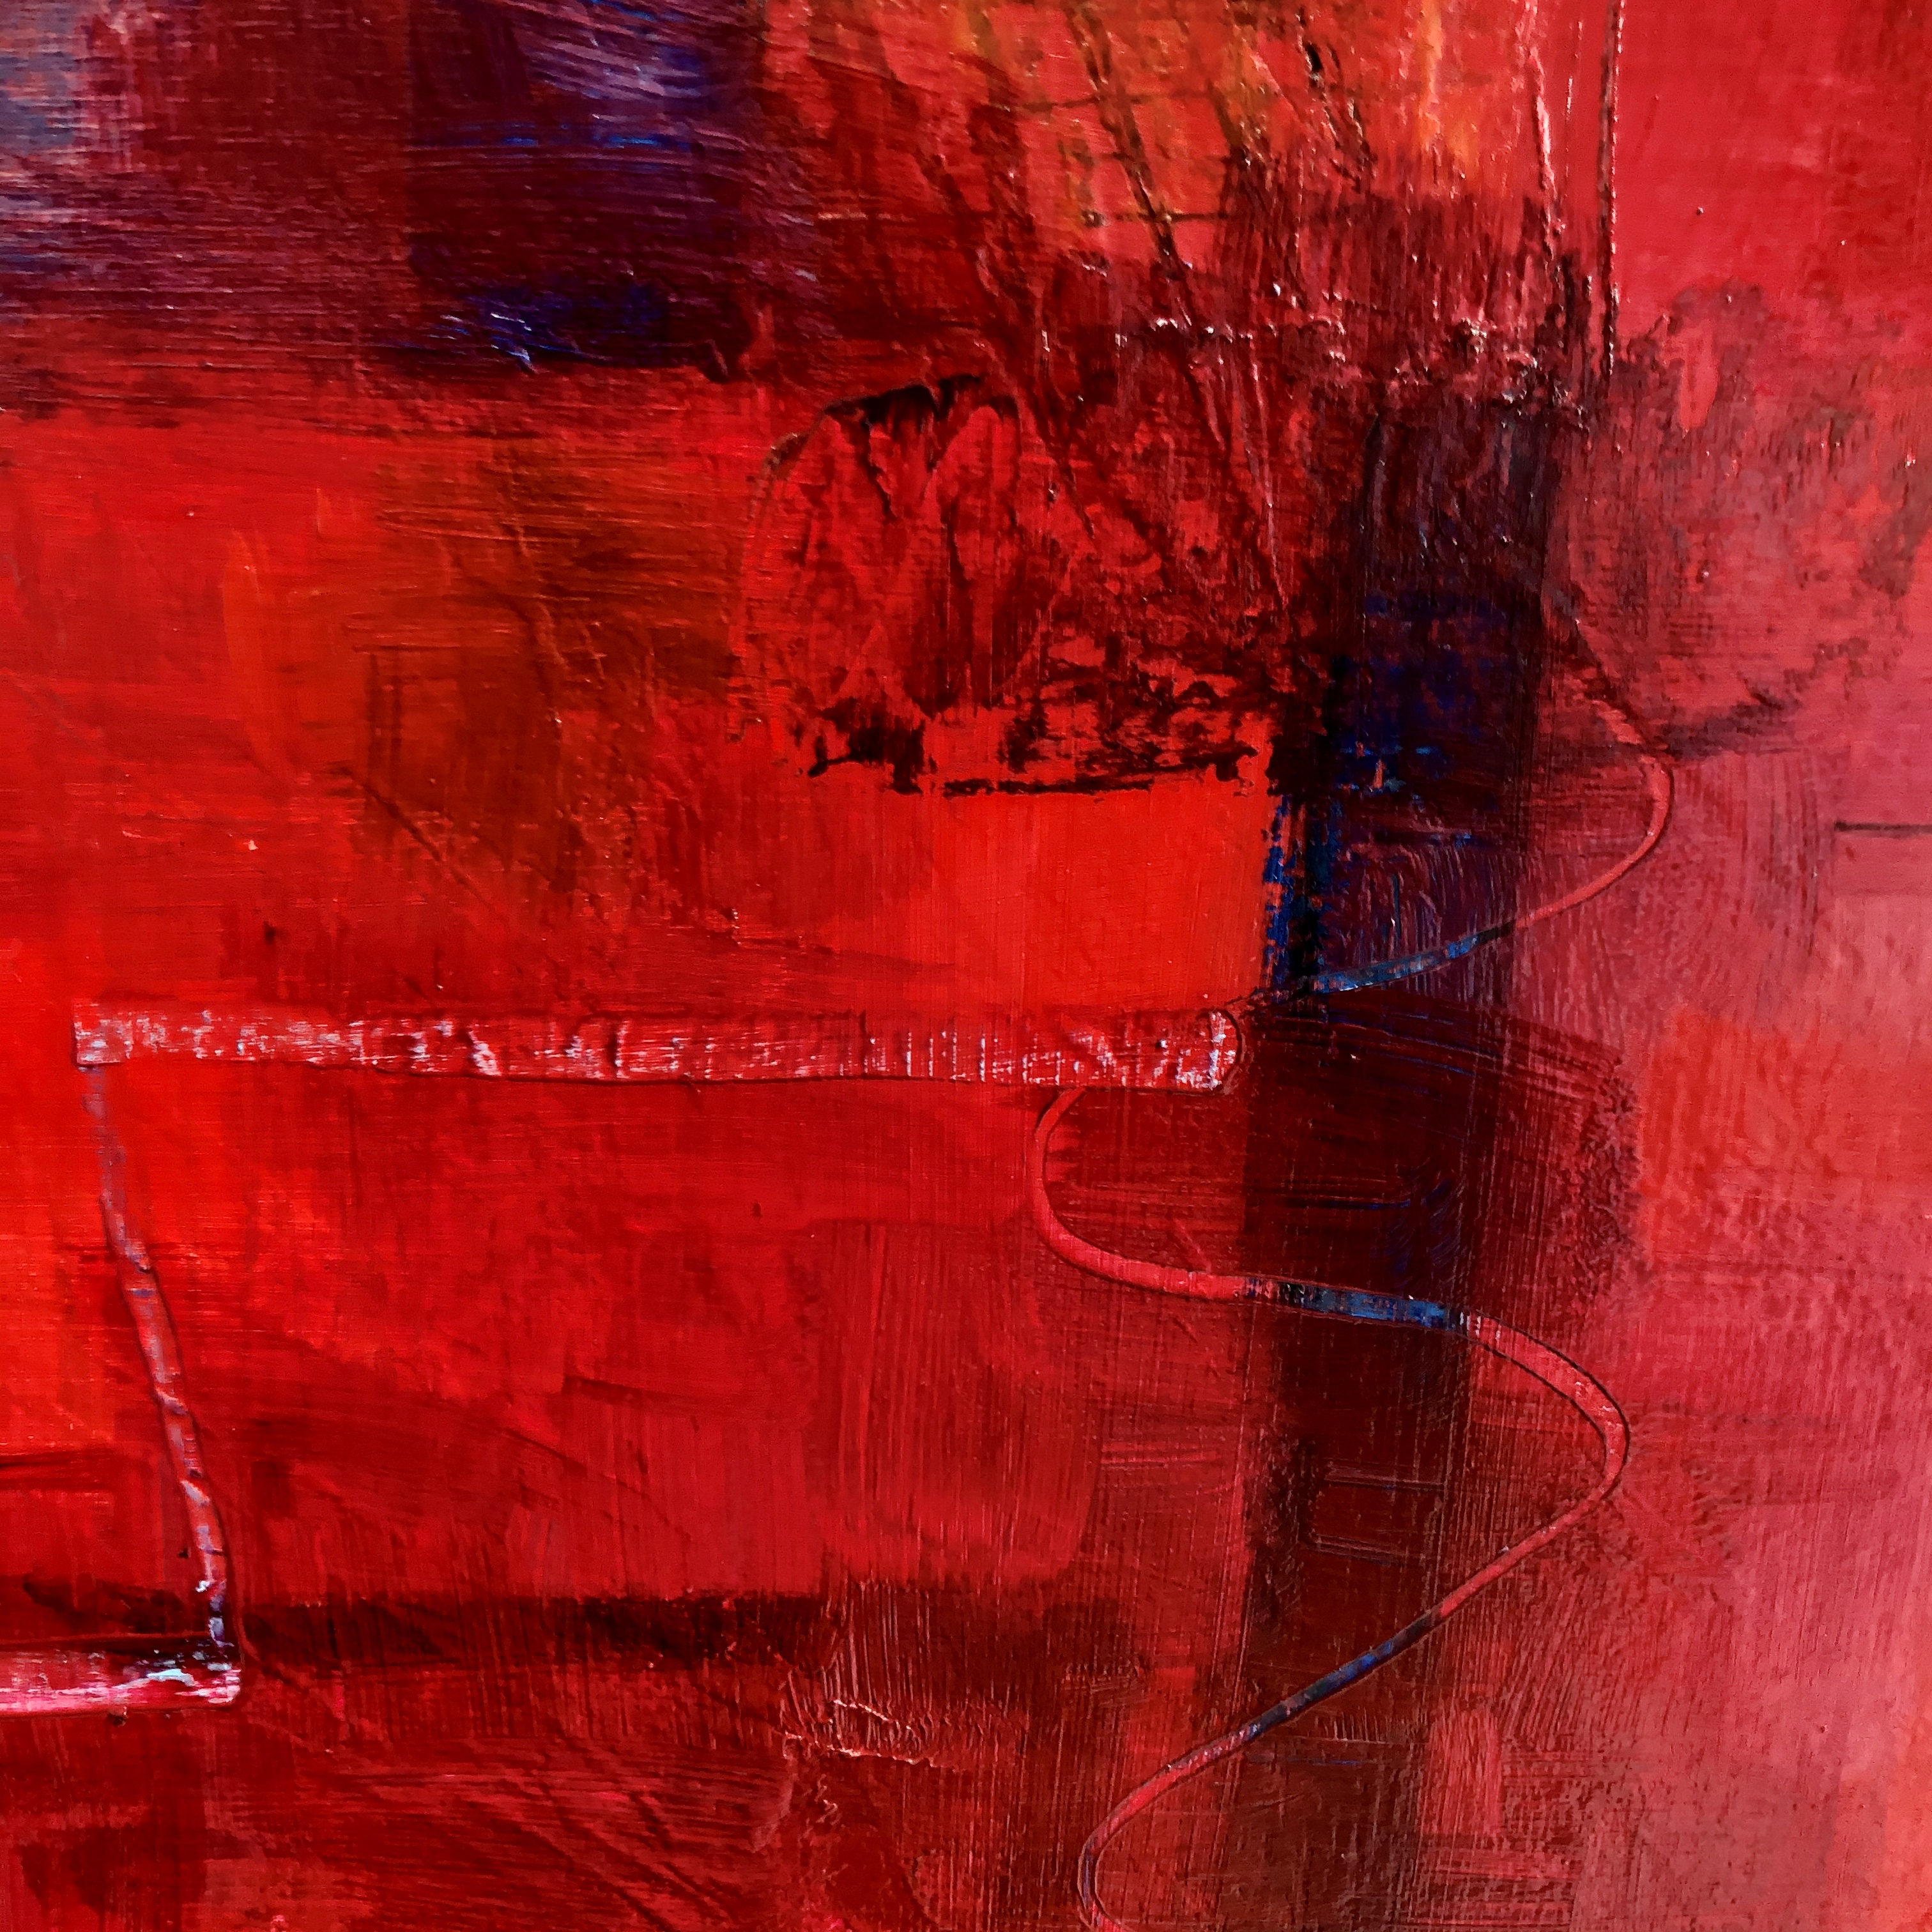 Abstract Red oil on canvas painting 80 x 80 cm £450